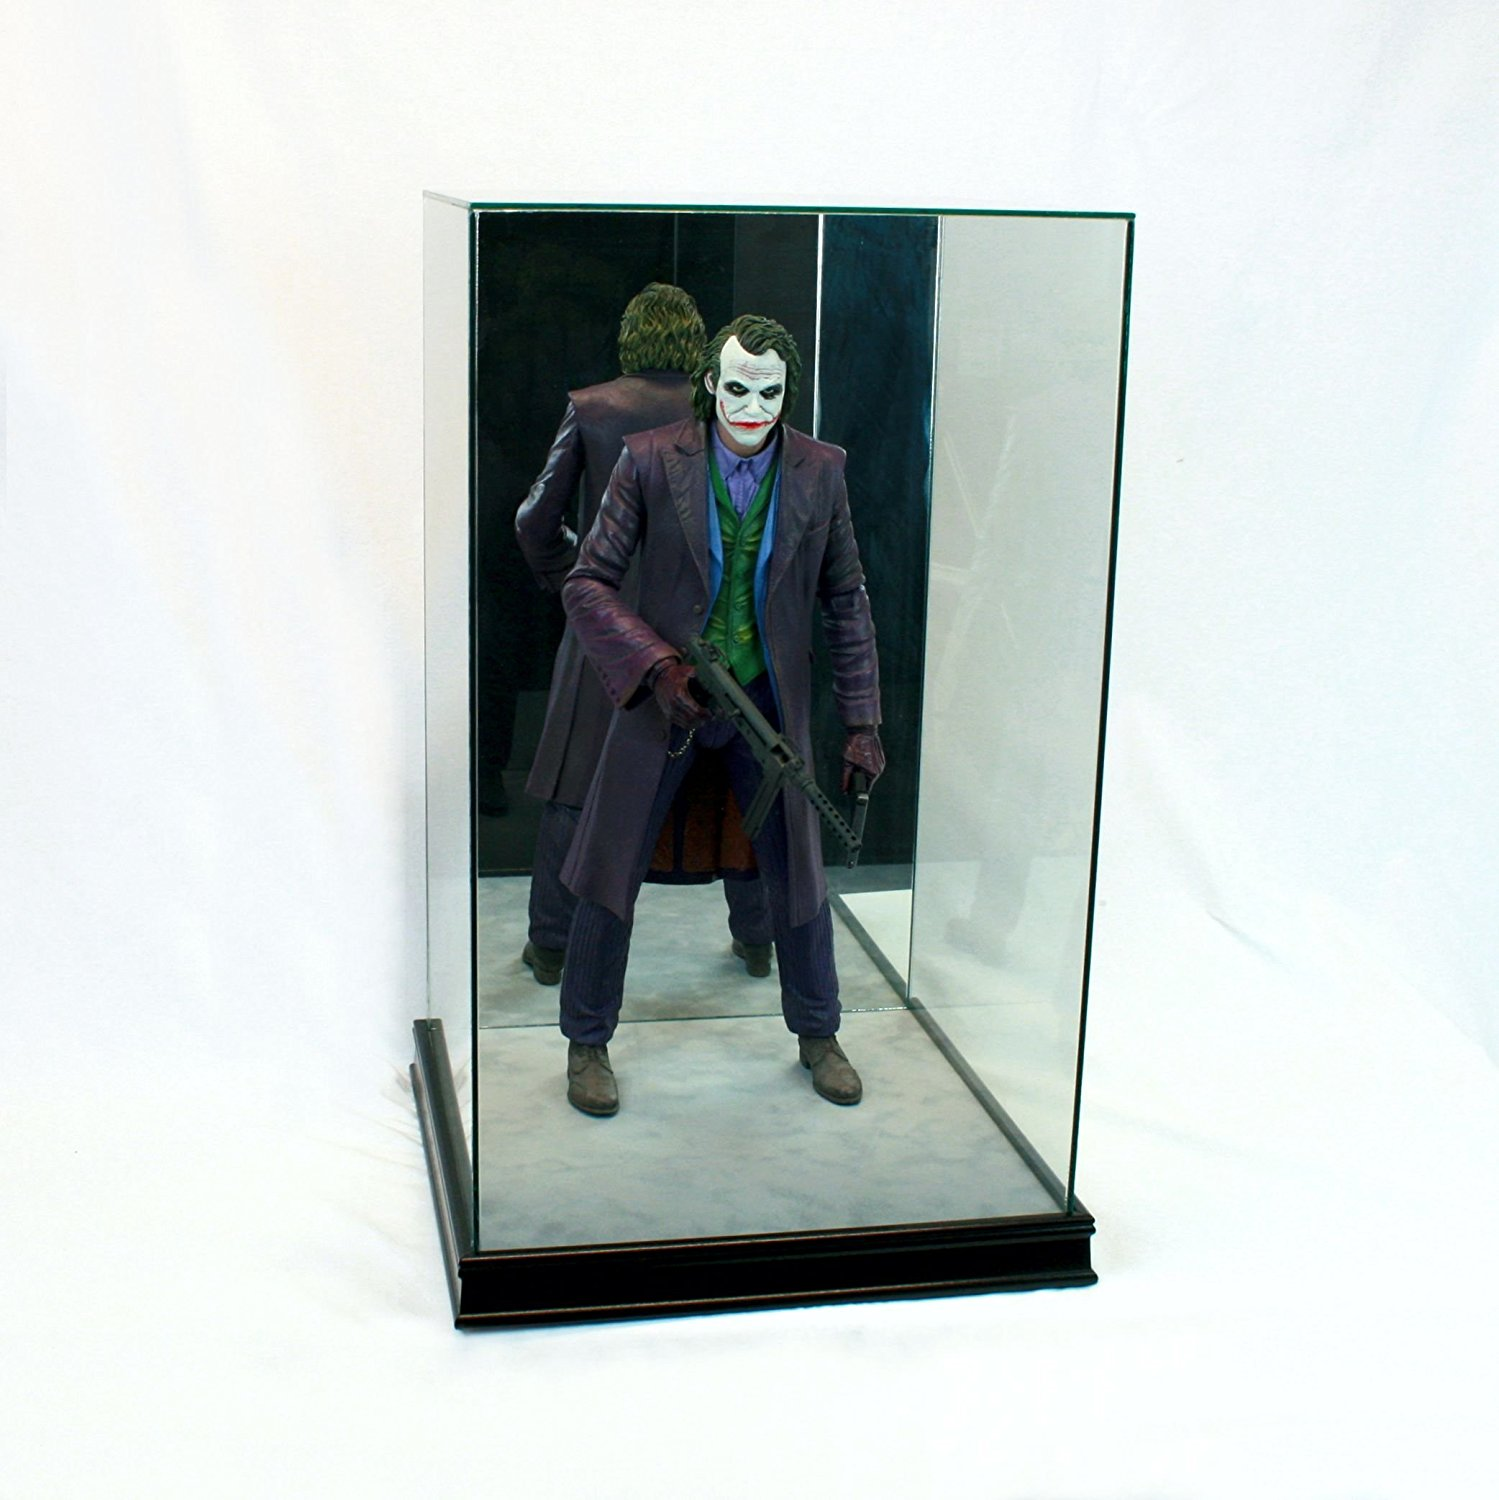 1 4 Scale Comic Figurine Display Case 20 Quot Tall All Glass